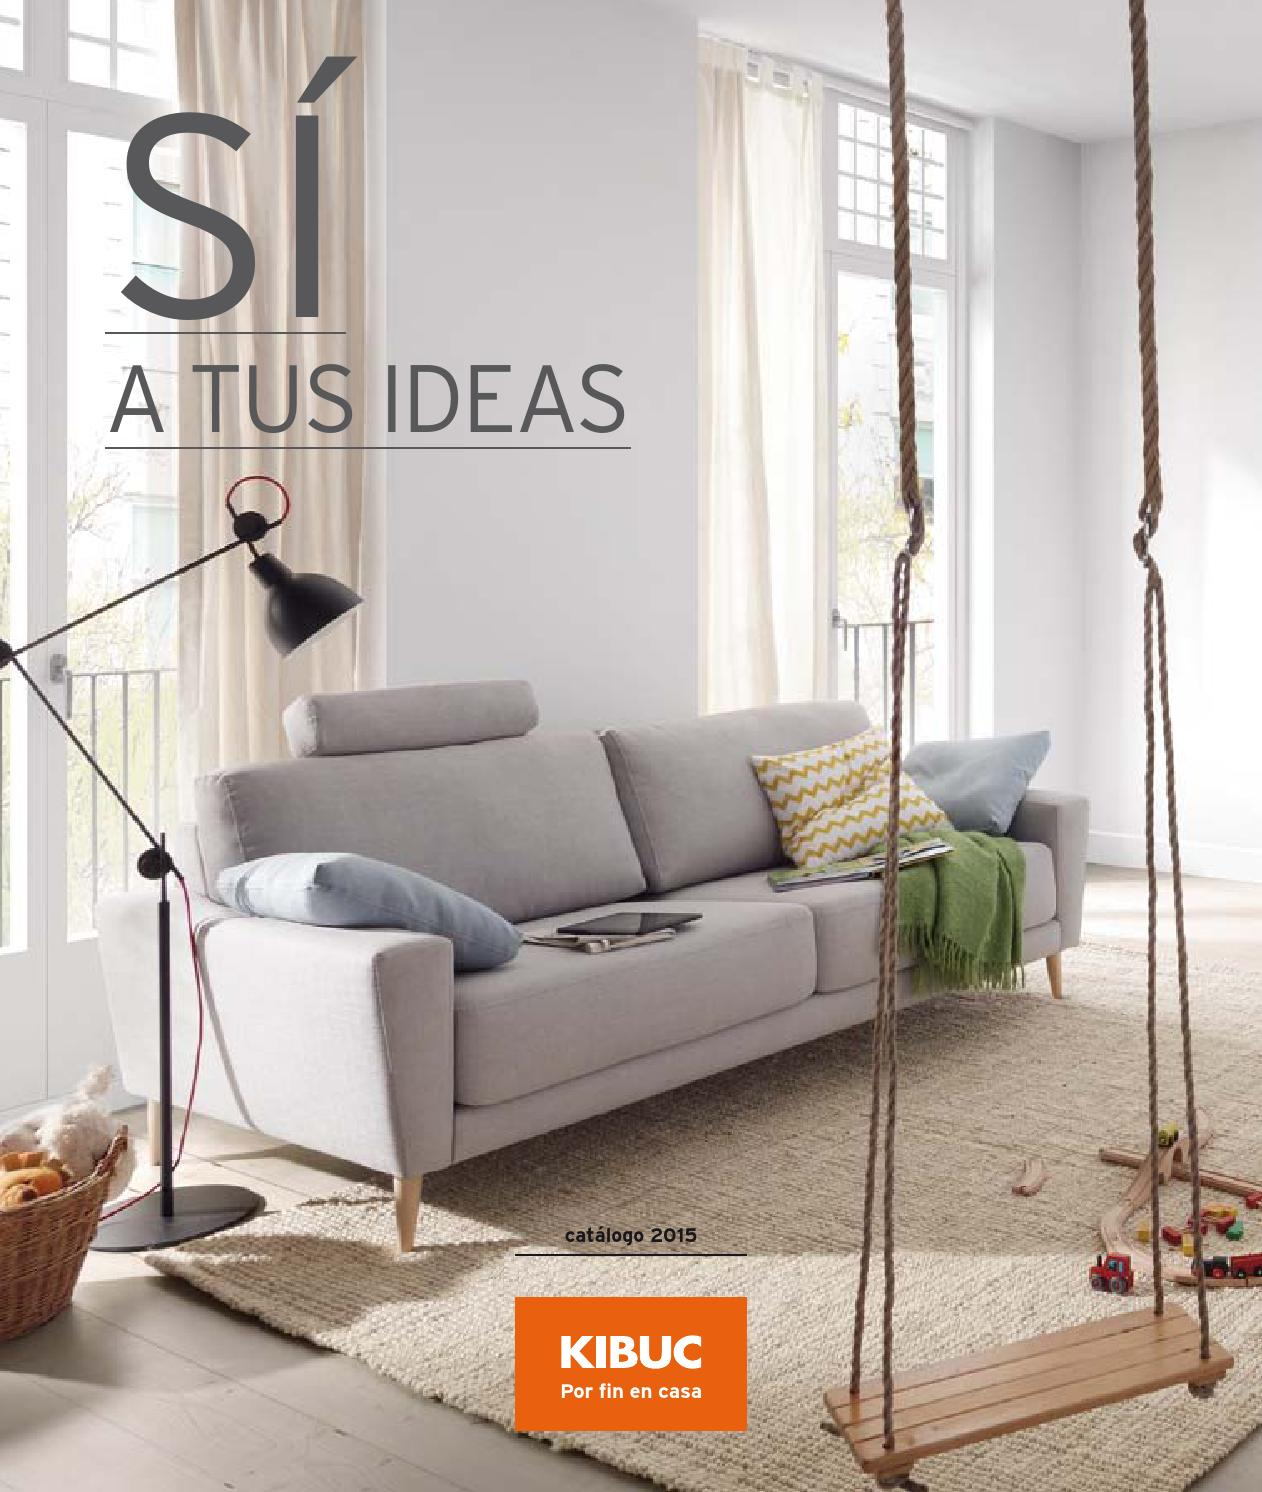 Muebles Salteras Catalogo Catalogo 2014 15 By Kibuc Issuu